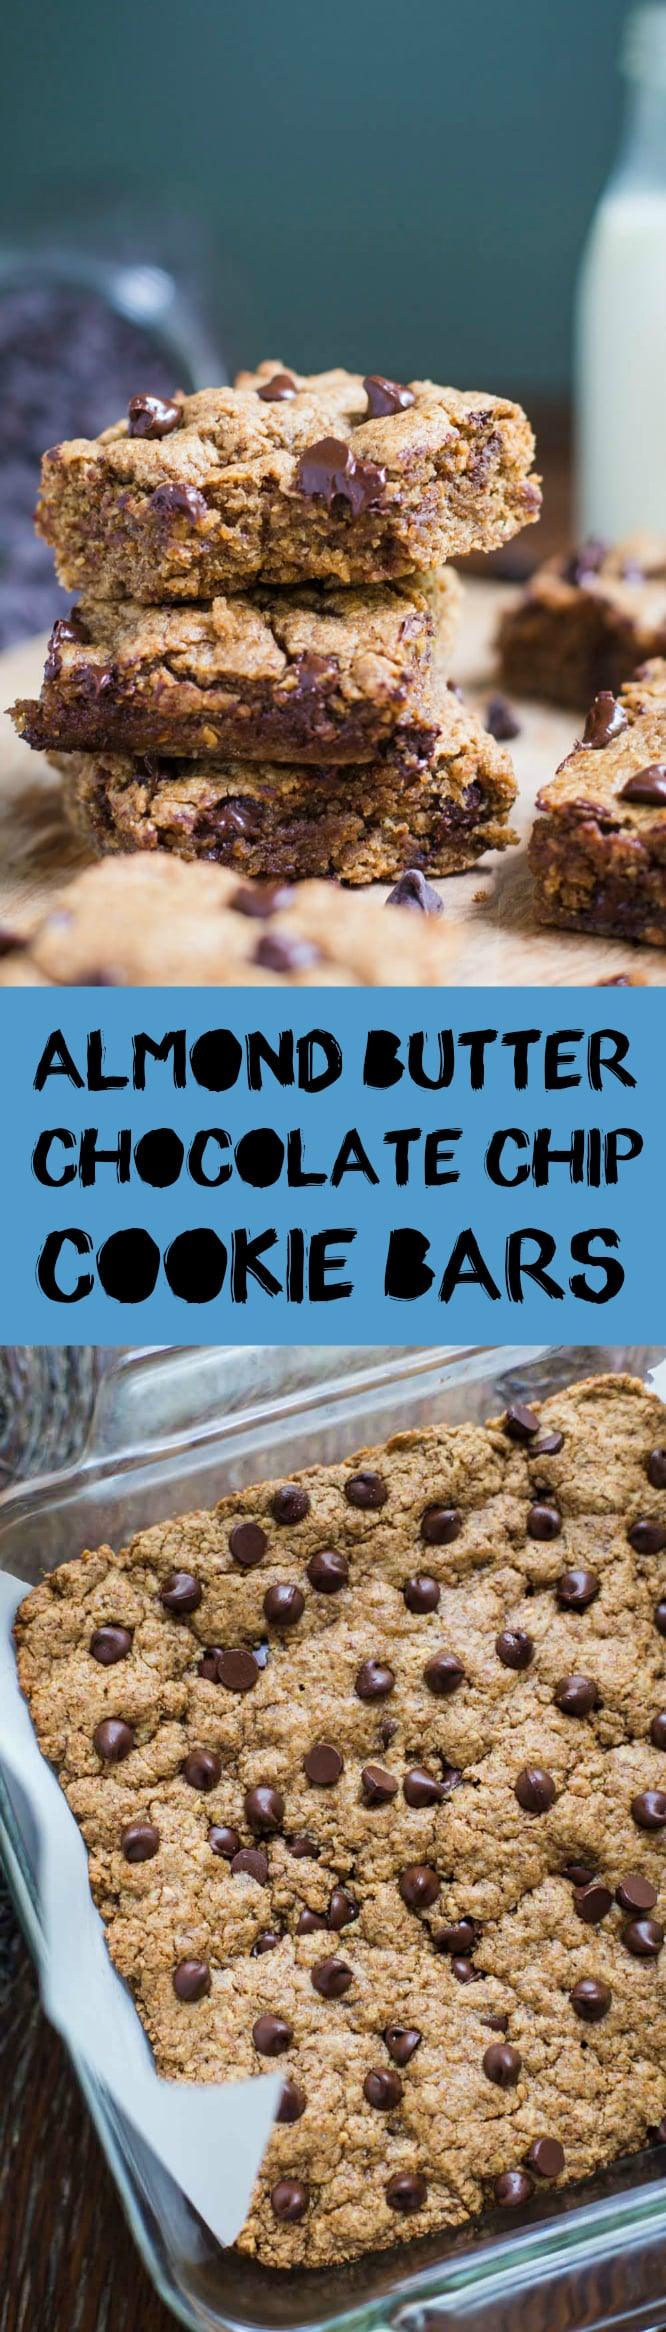 Almond Butter Chocolate Chip Cookie Bars- VEGAN and delicious!!